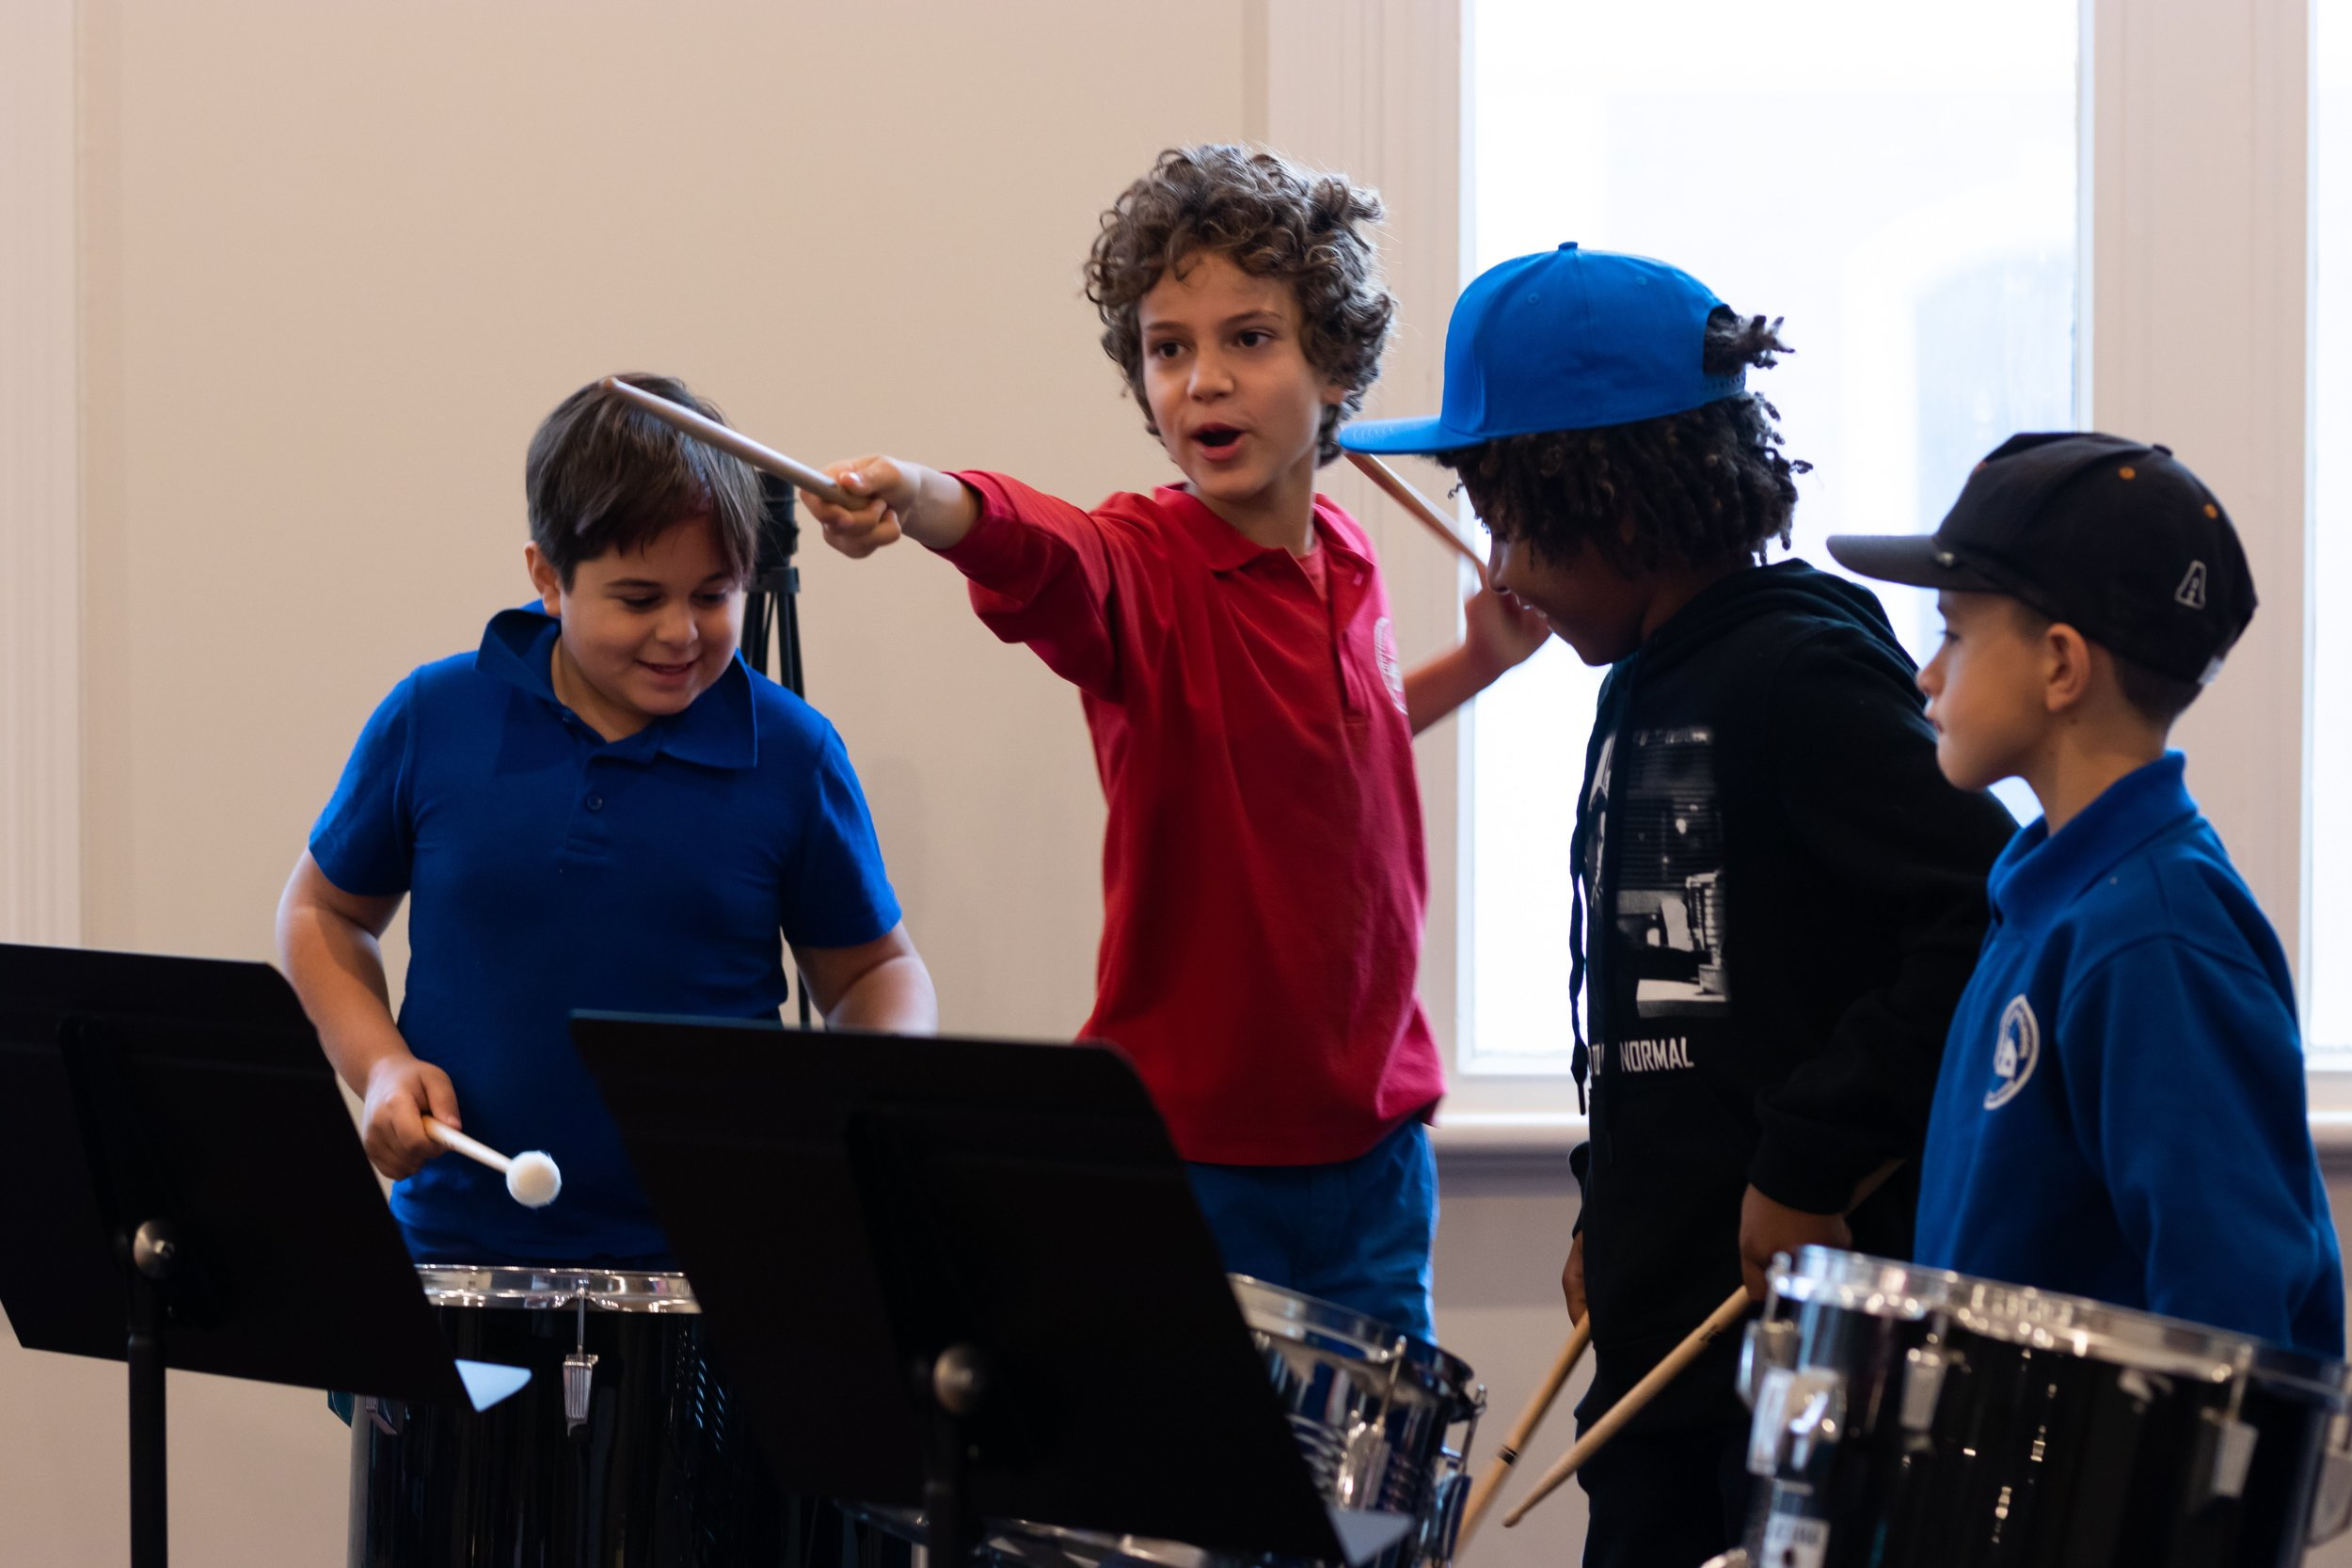 We are delighted to support Chasing Sound in growing their reach and offering more opportunities to school age students who otherwise might not have had access to Chasing Sound's offering.